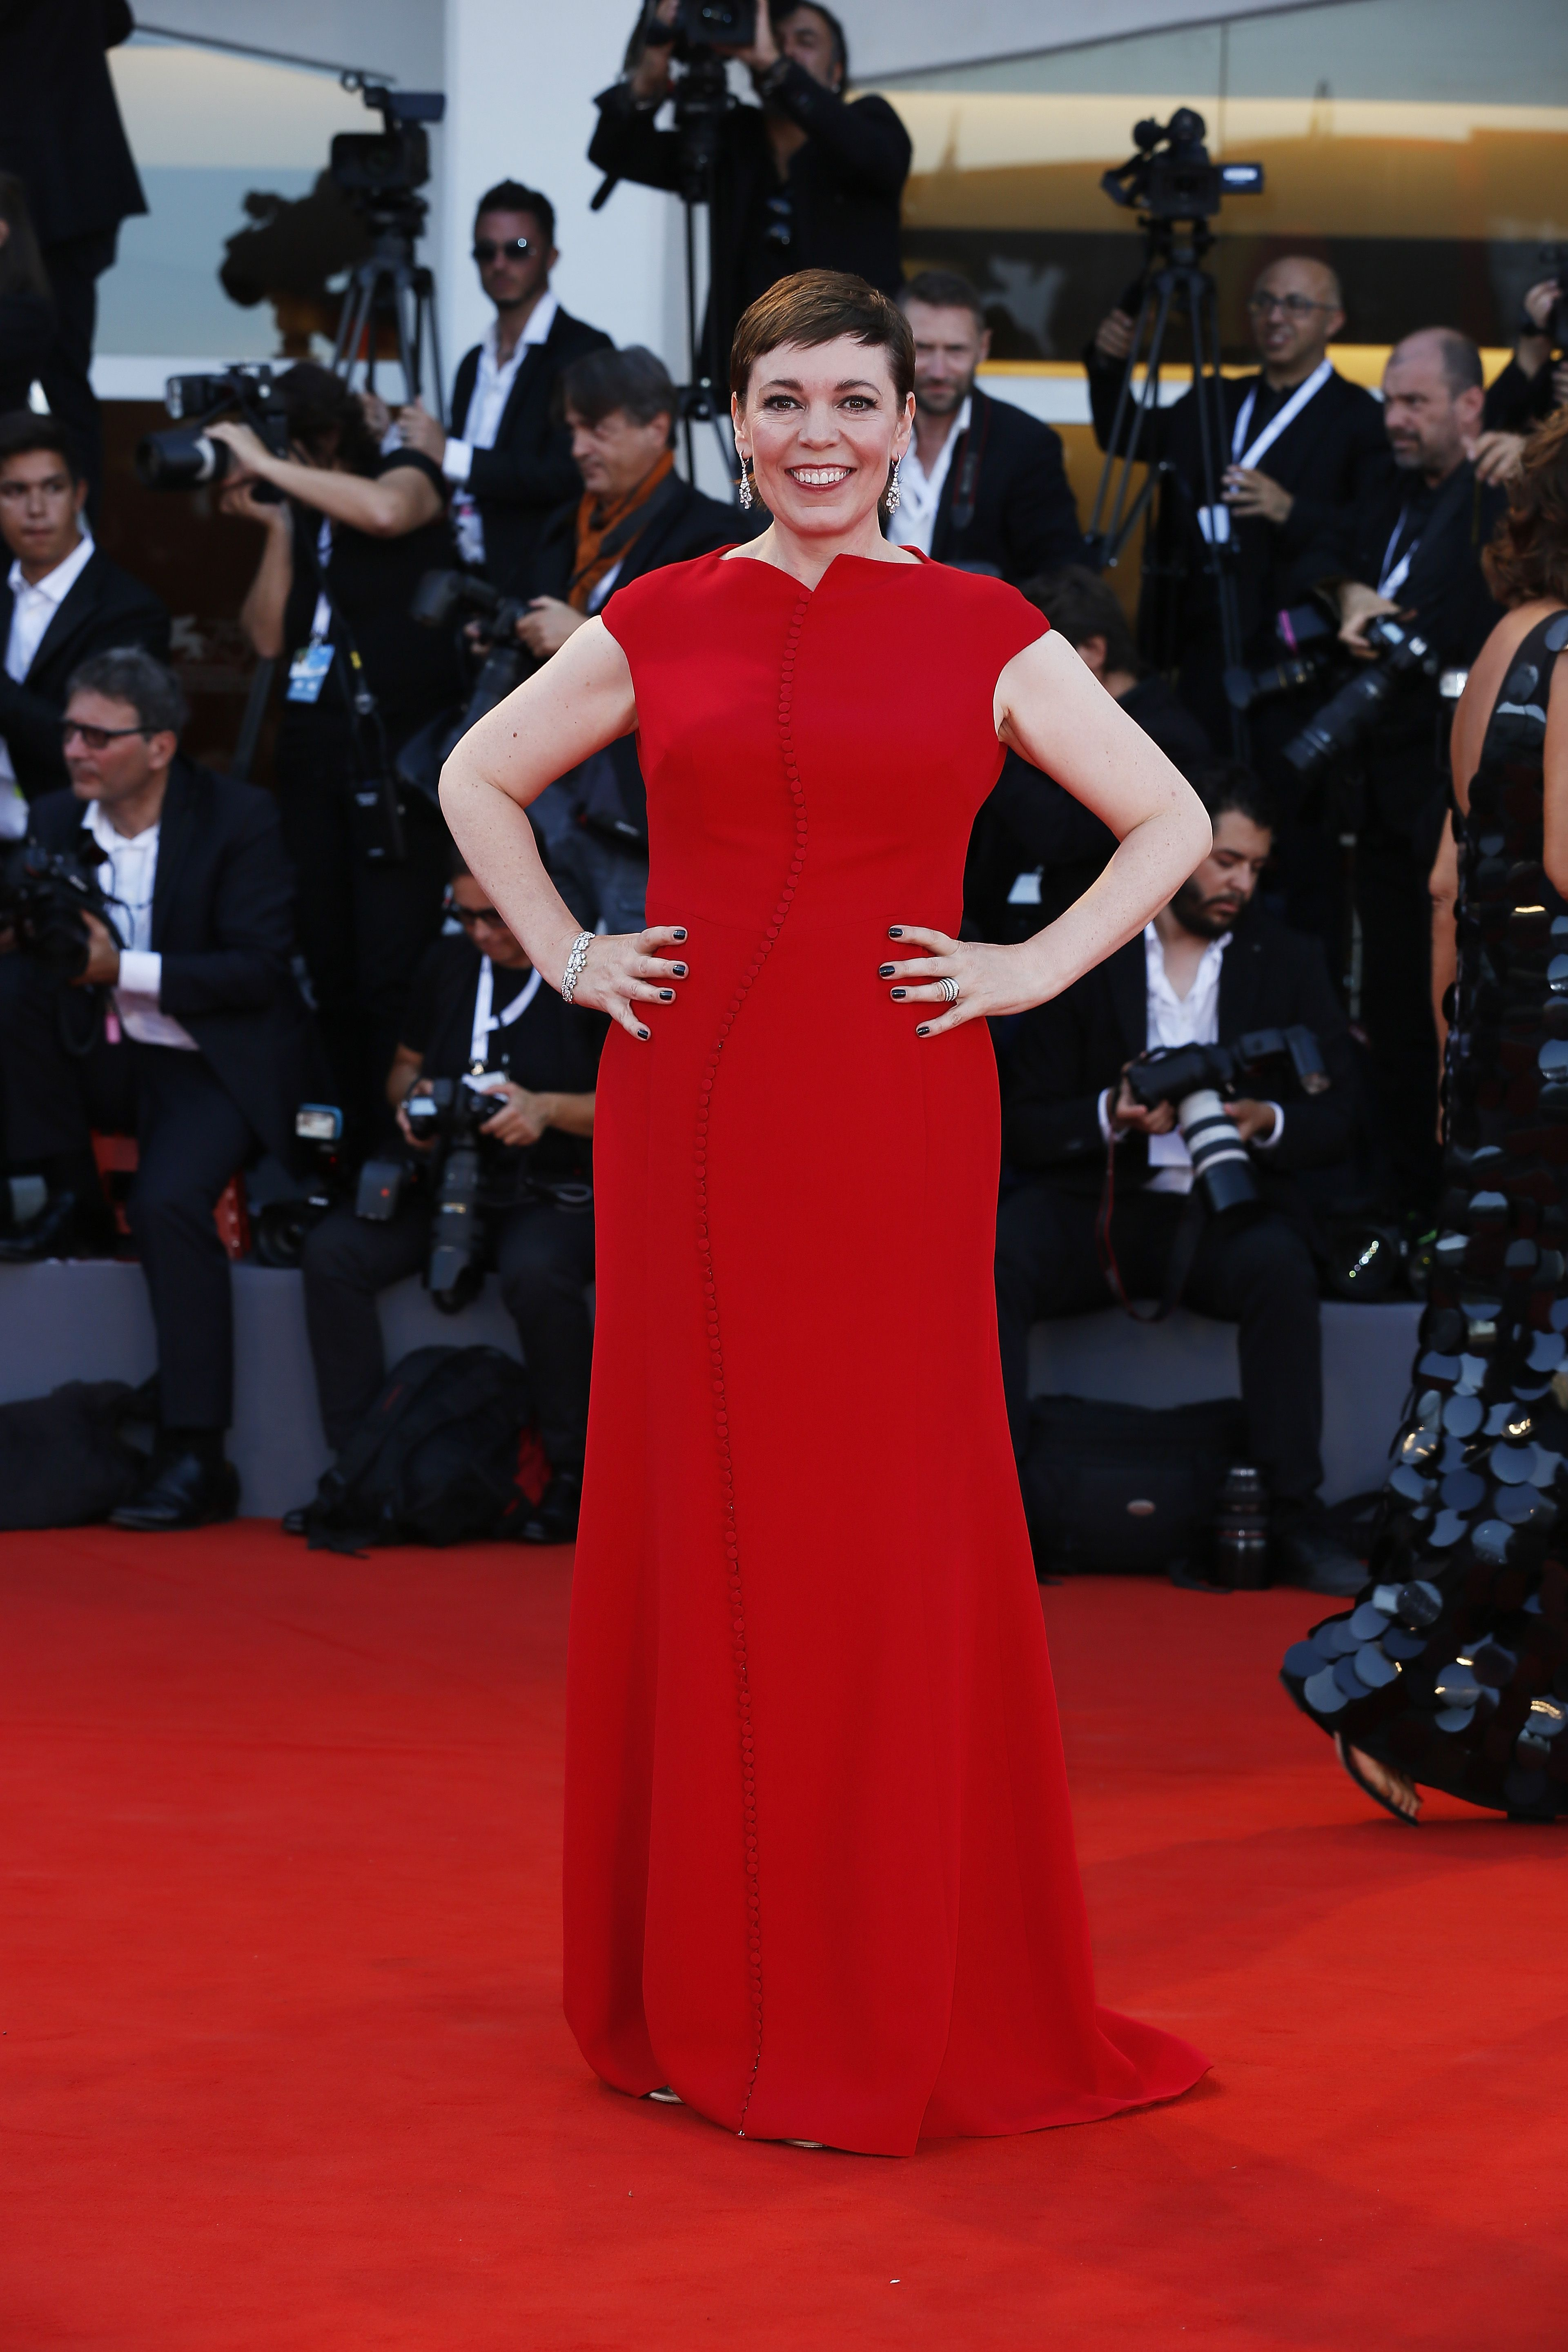 Olivia Colman stood out from the crowd in a bright red gown and diamond drop earrings on the red carpet at the Venice Film Festival.